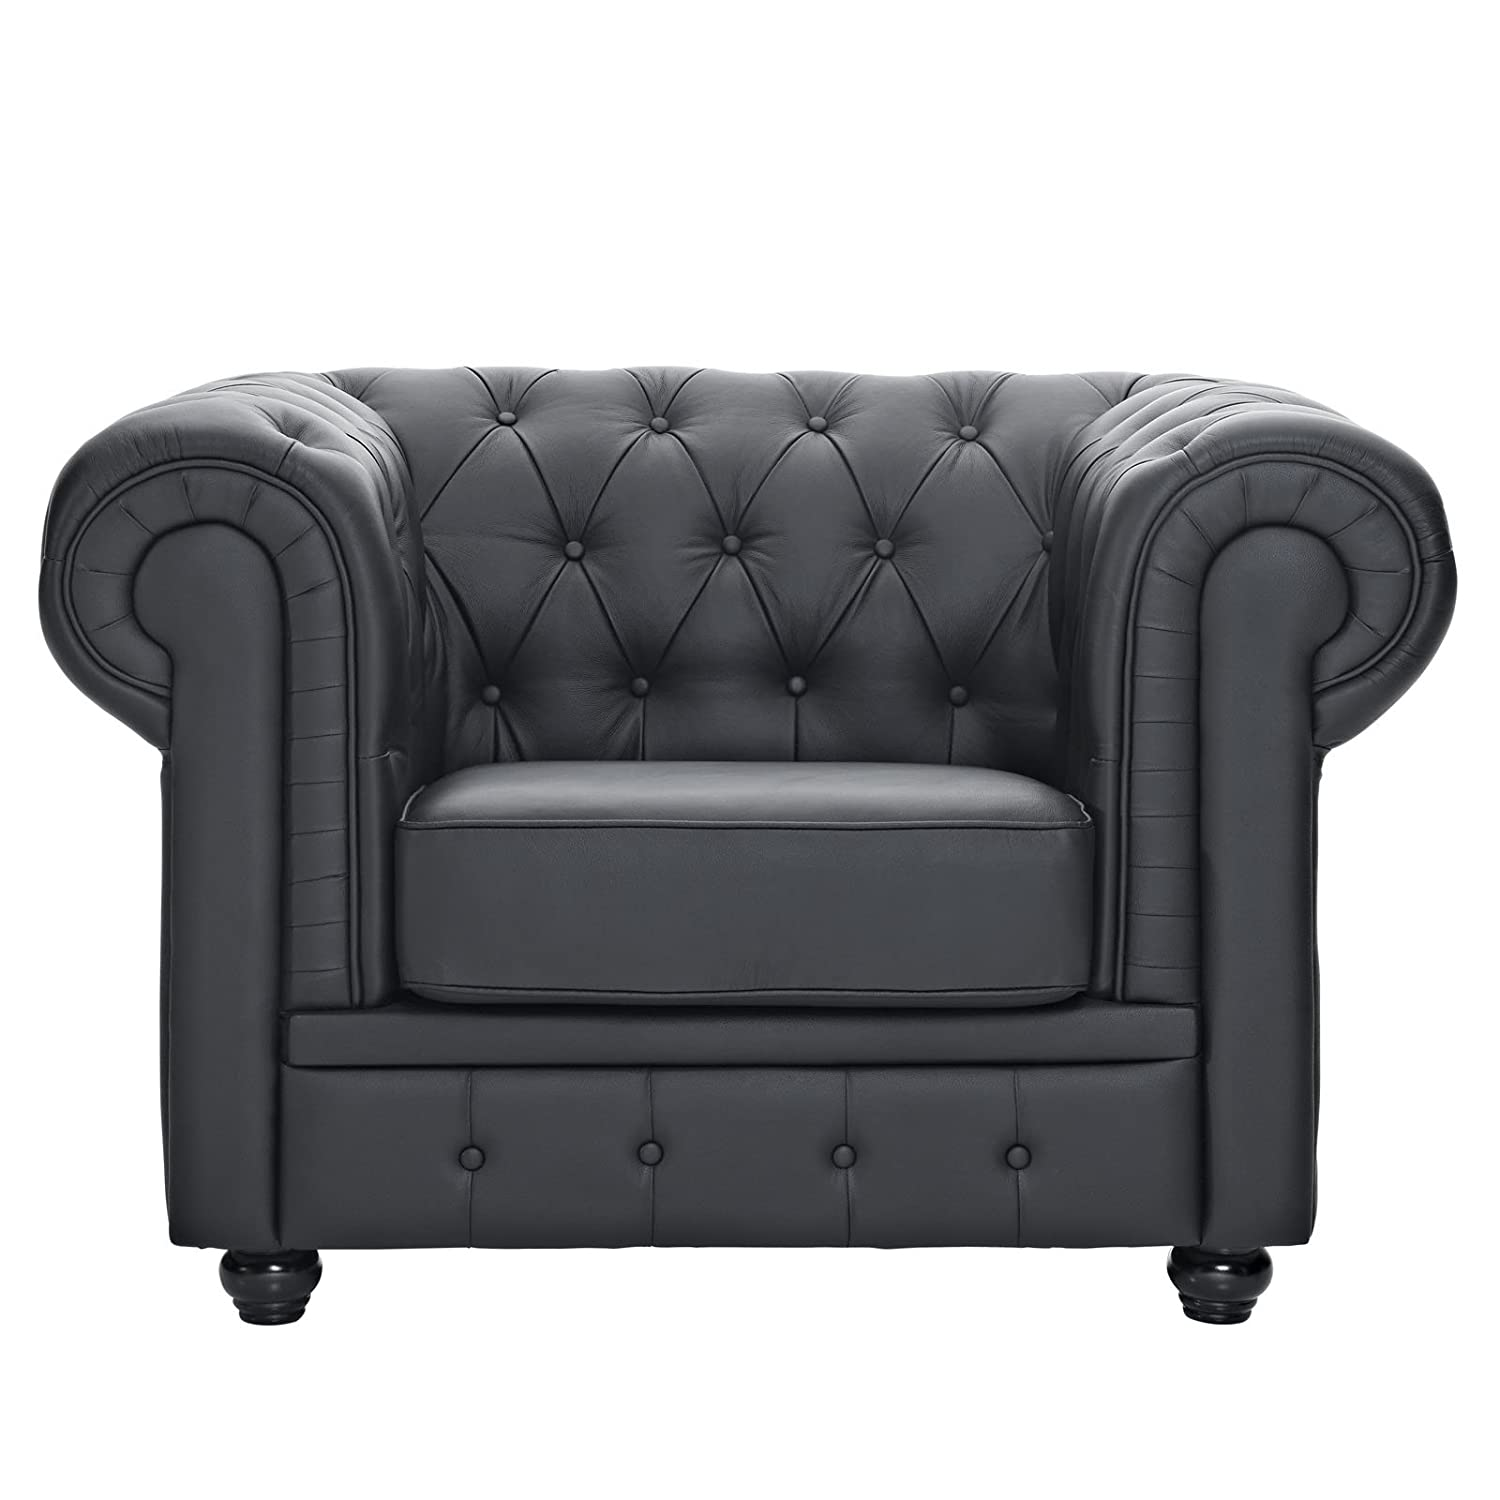 Amazon.com: Modway Chesterfield Armchair In Black Leather And Leather  Match: Kitchen U0026 Dining